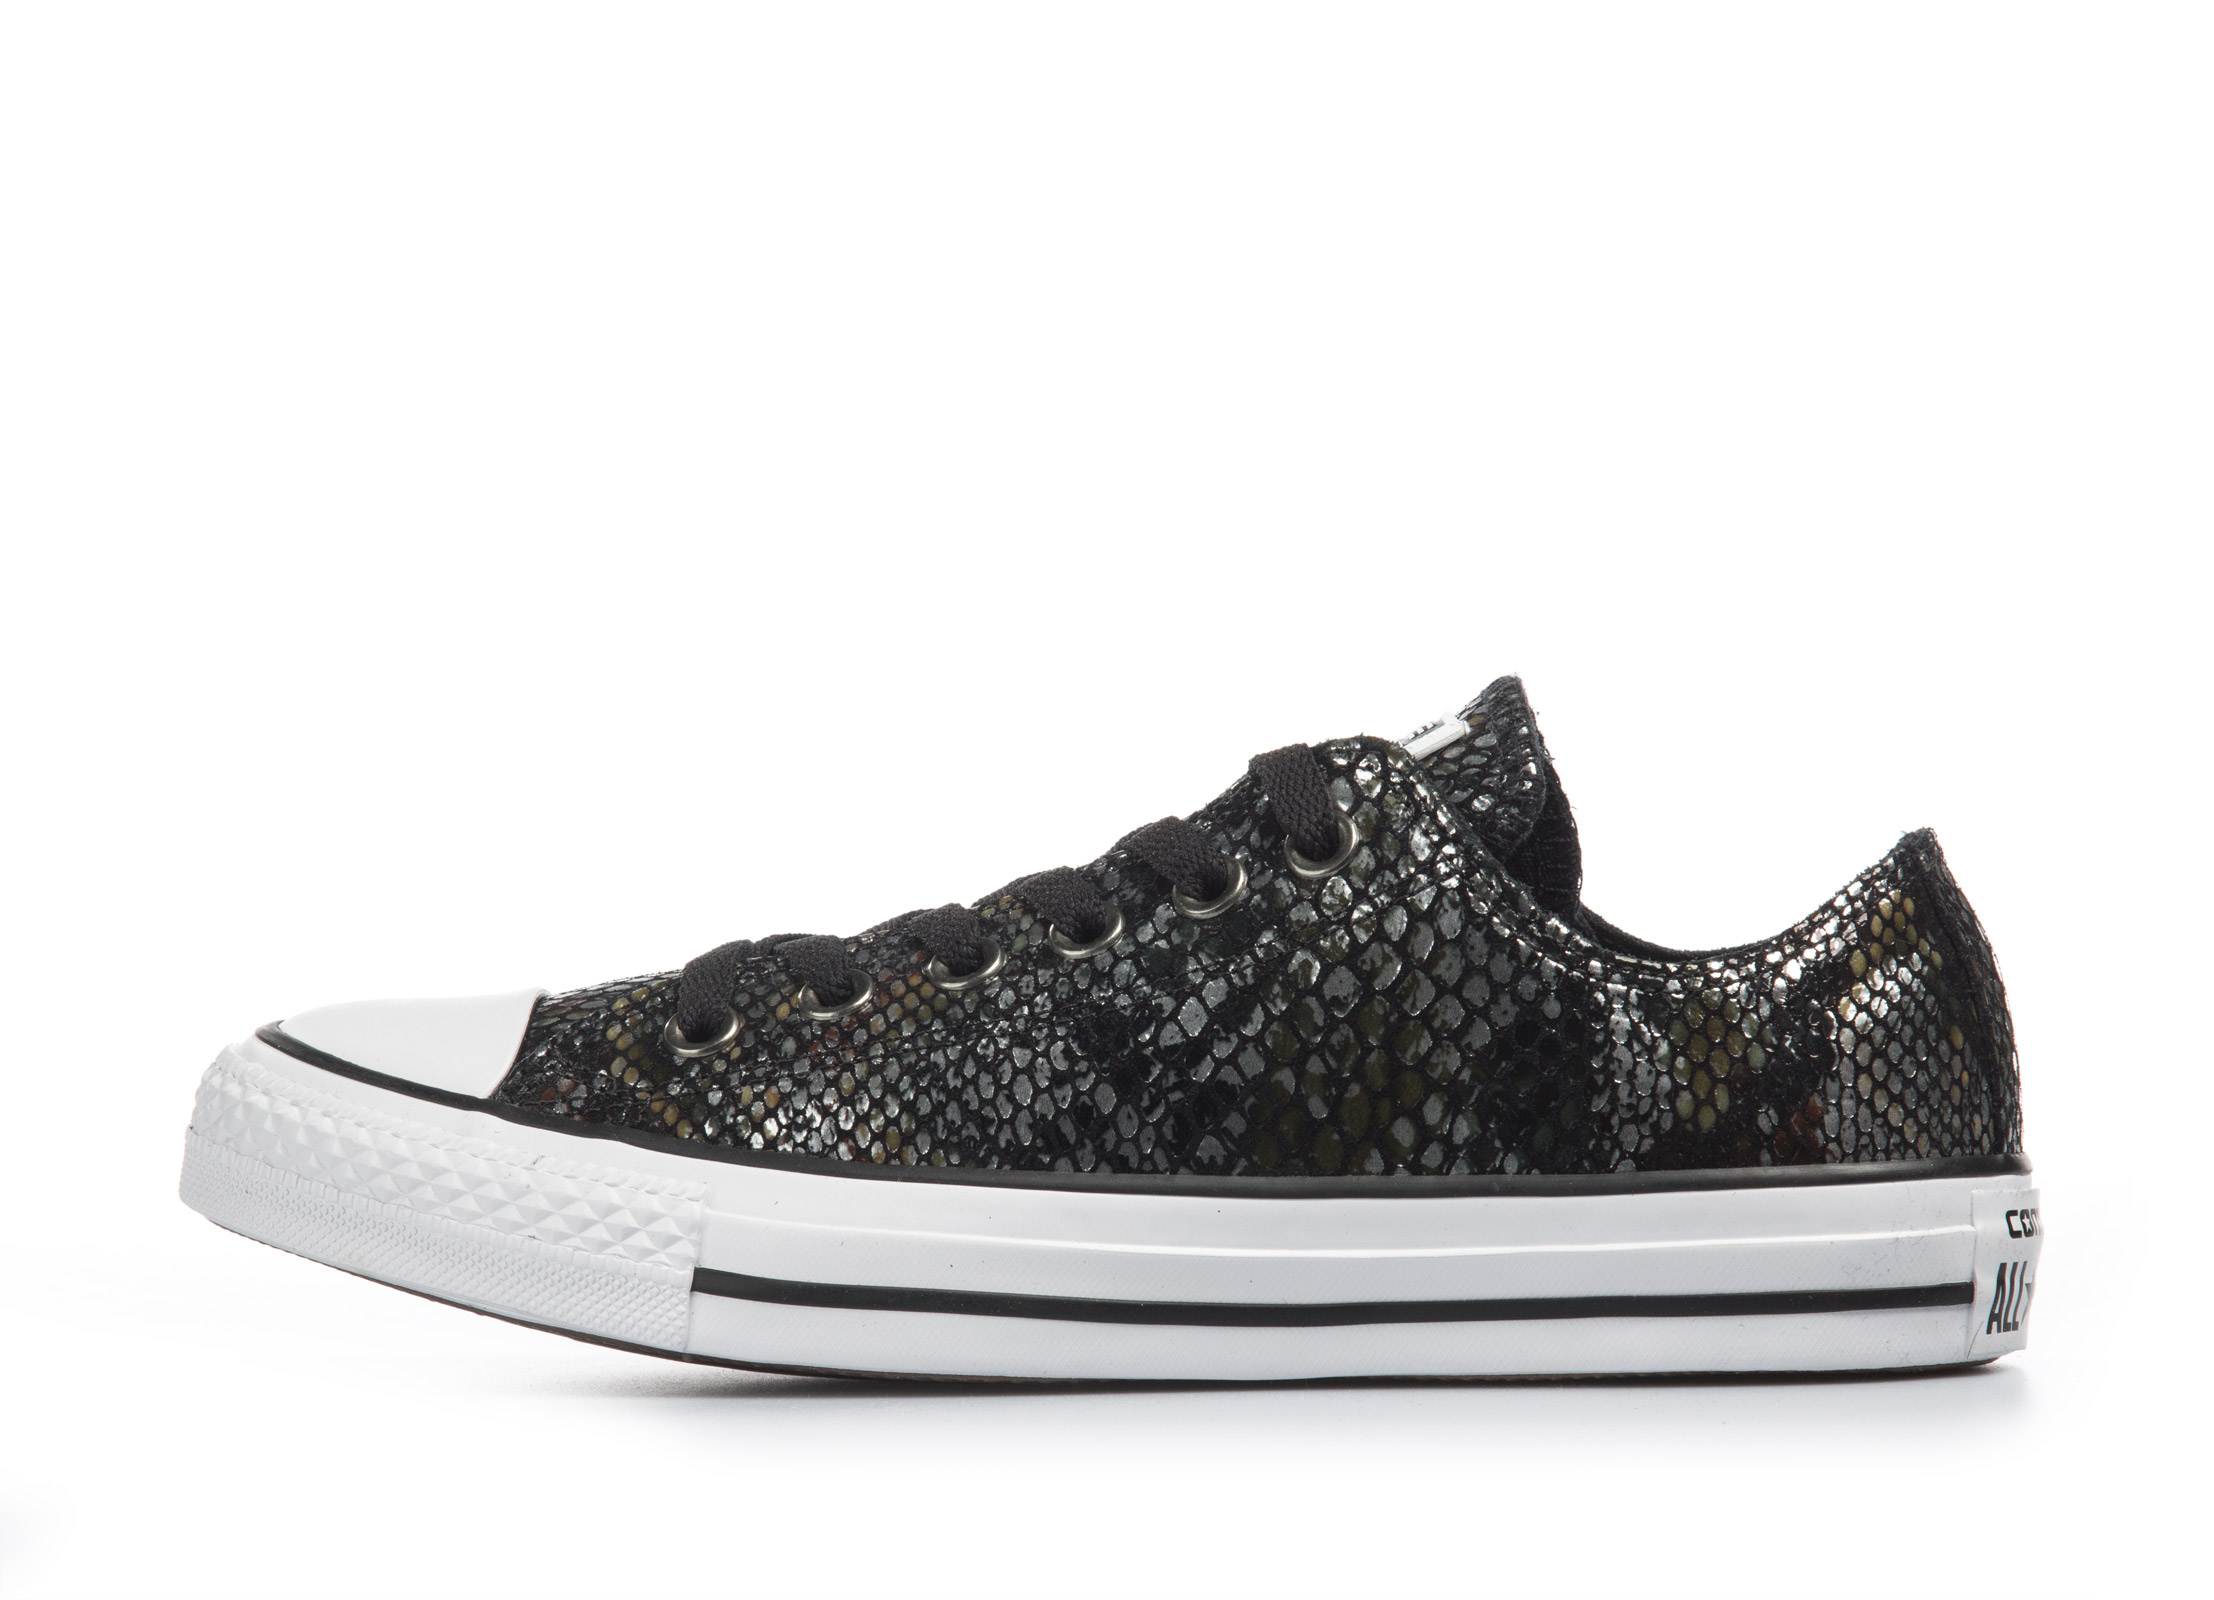 Converse Chuck Taylor All Star Snake Fashion 557981C Ανθρακί γυναικα   υποδήματα   μόδας